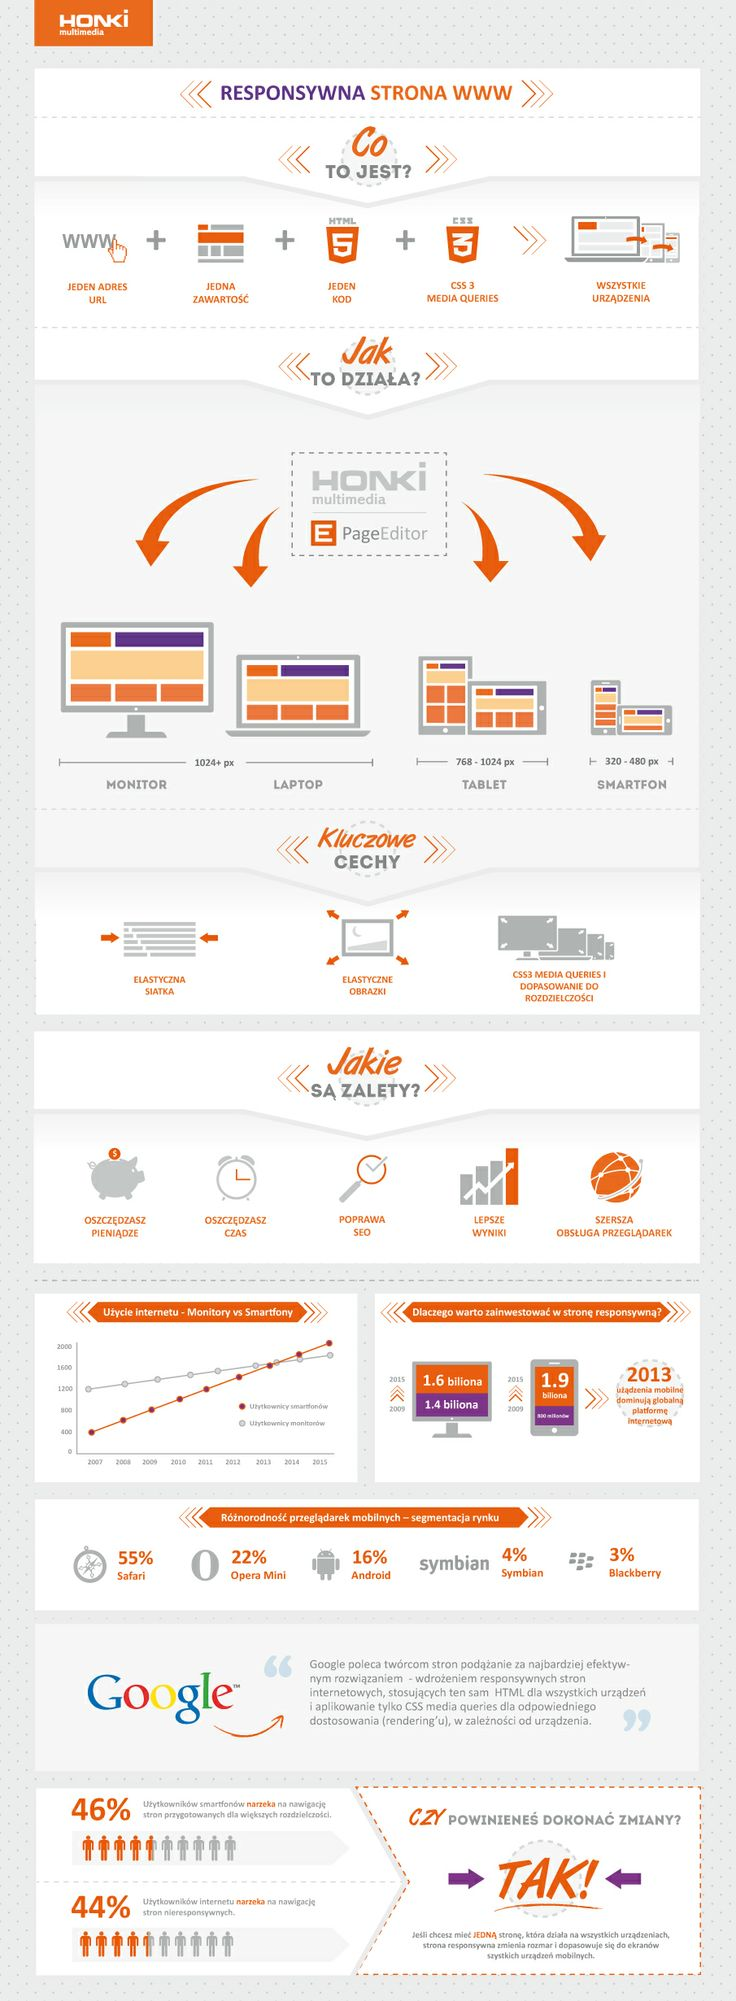 What's Responsive Web Design #RWD #ResponsiveDesign #PageEditor #HonkiPresentation